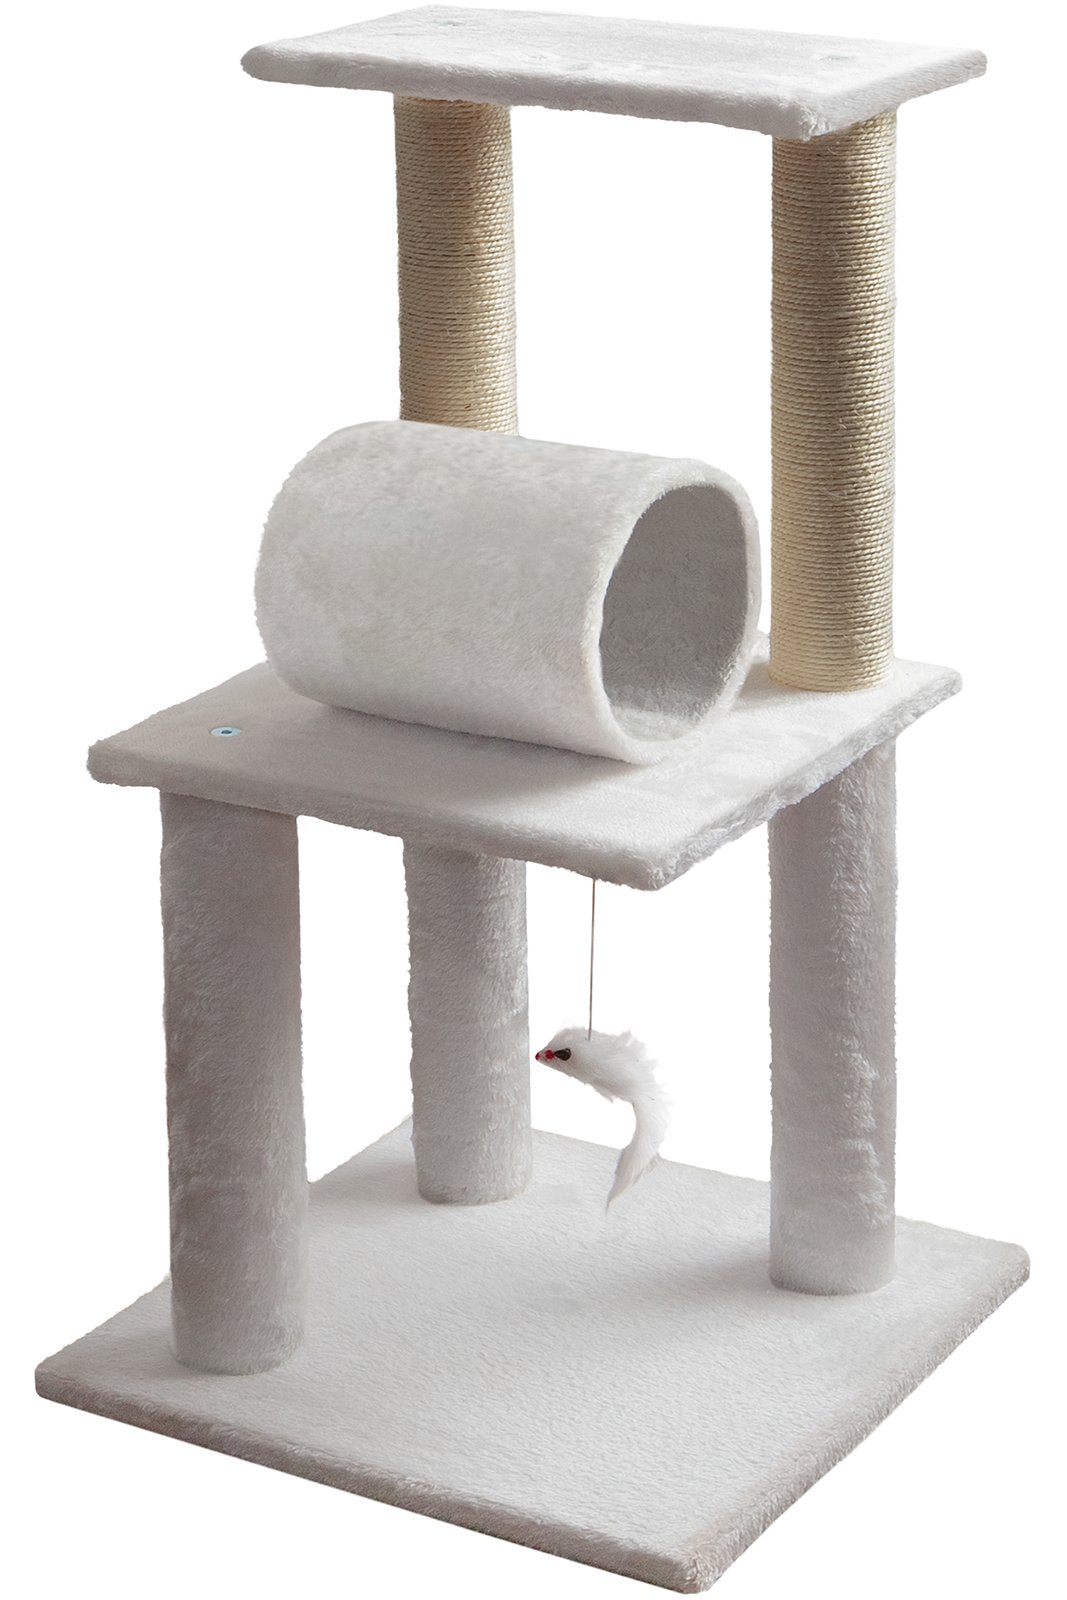 Paws & Pals 16'' x 16'' x 33'' Inches Multi-Level Cat Scratching Post 3 Level Cat Condo Tree House Tower with Sisal Rope, Feather Mouse Cat Toy Ball, Play Tunnel by Paws & Pals